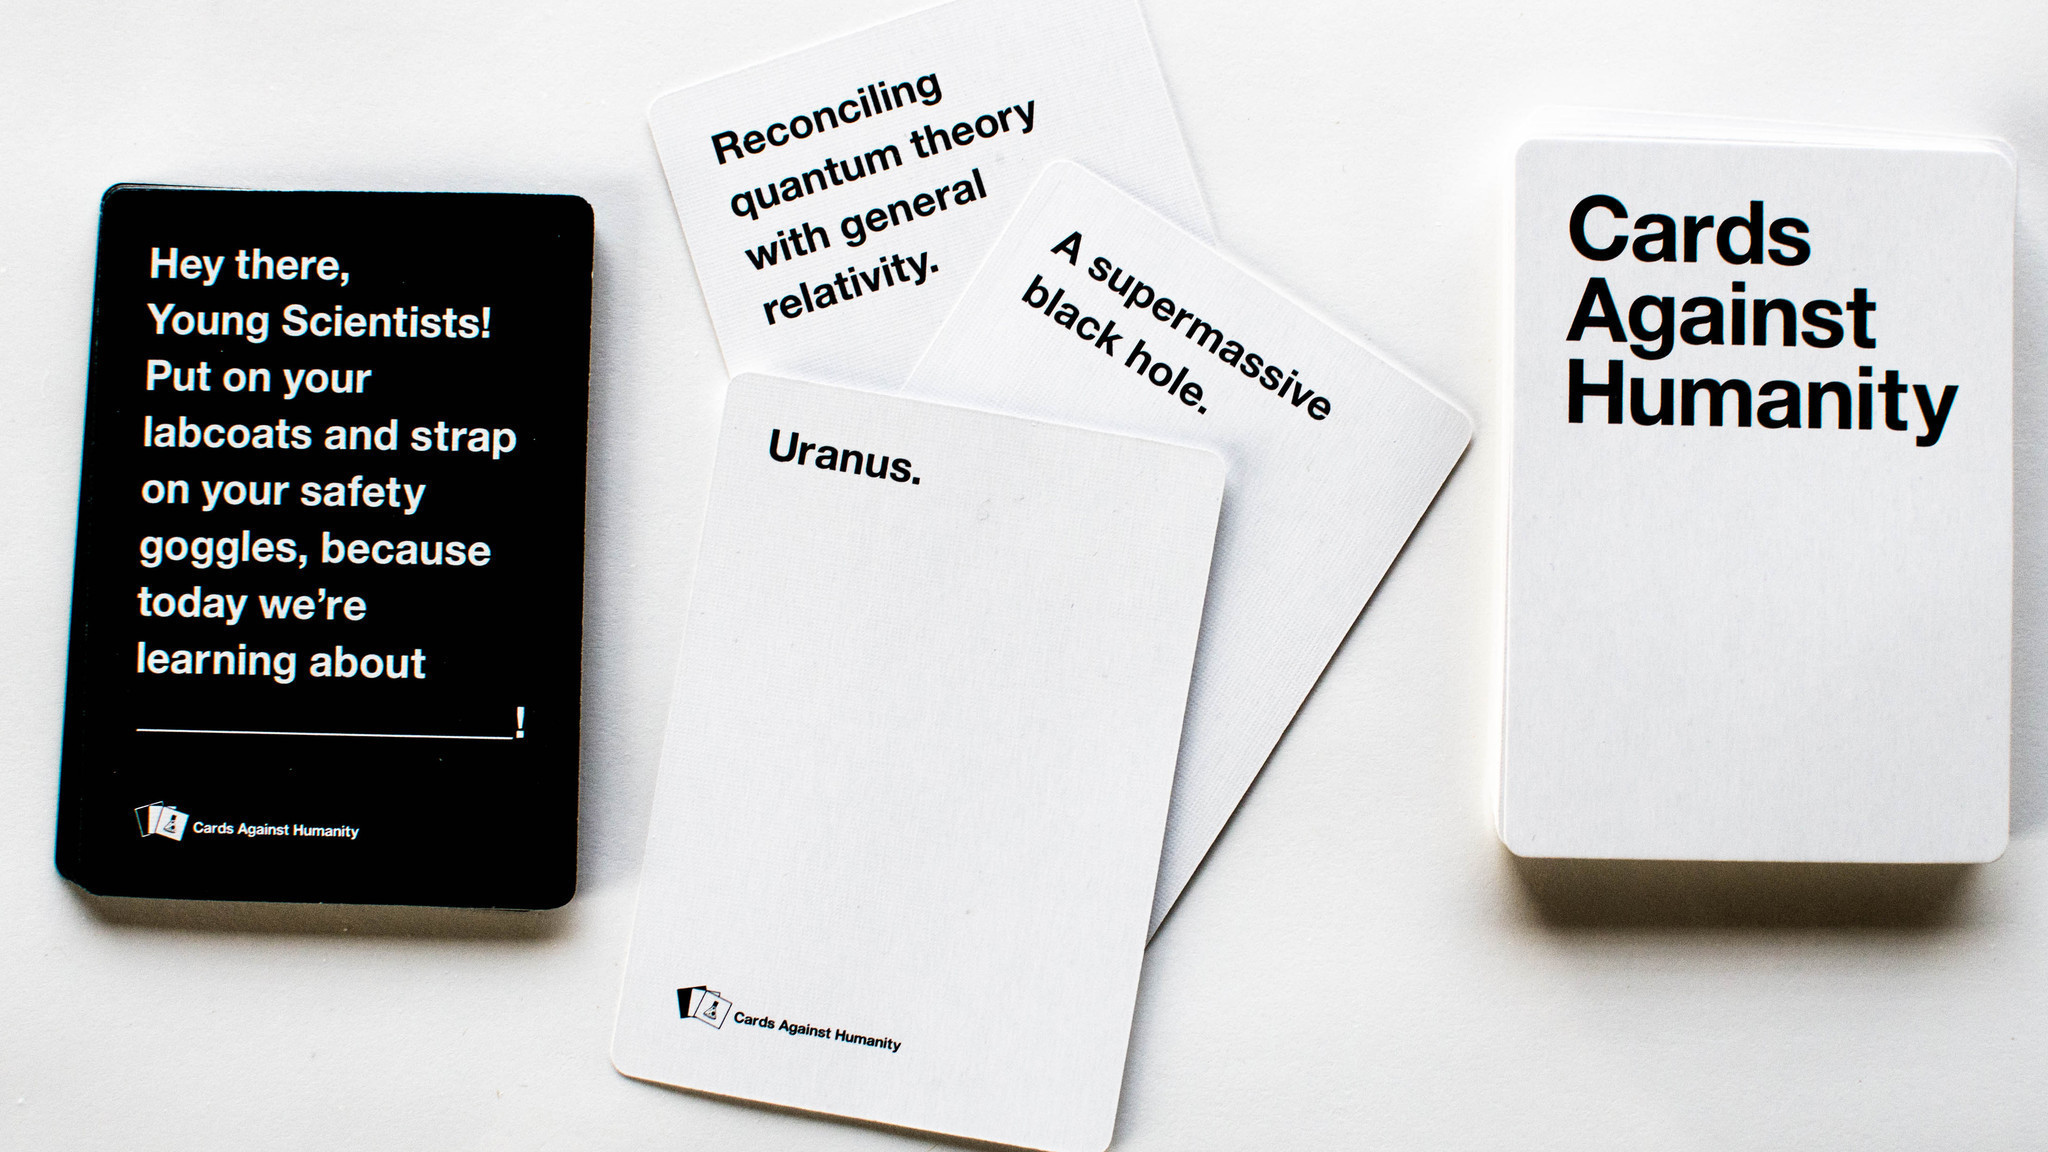 cards against humanity - photo #10